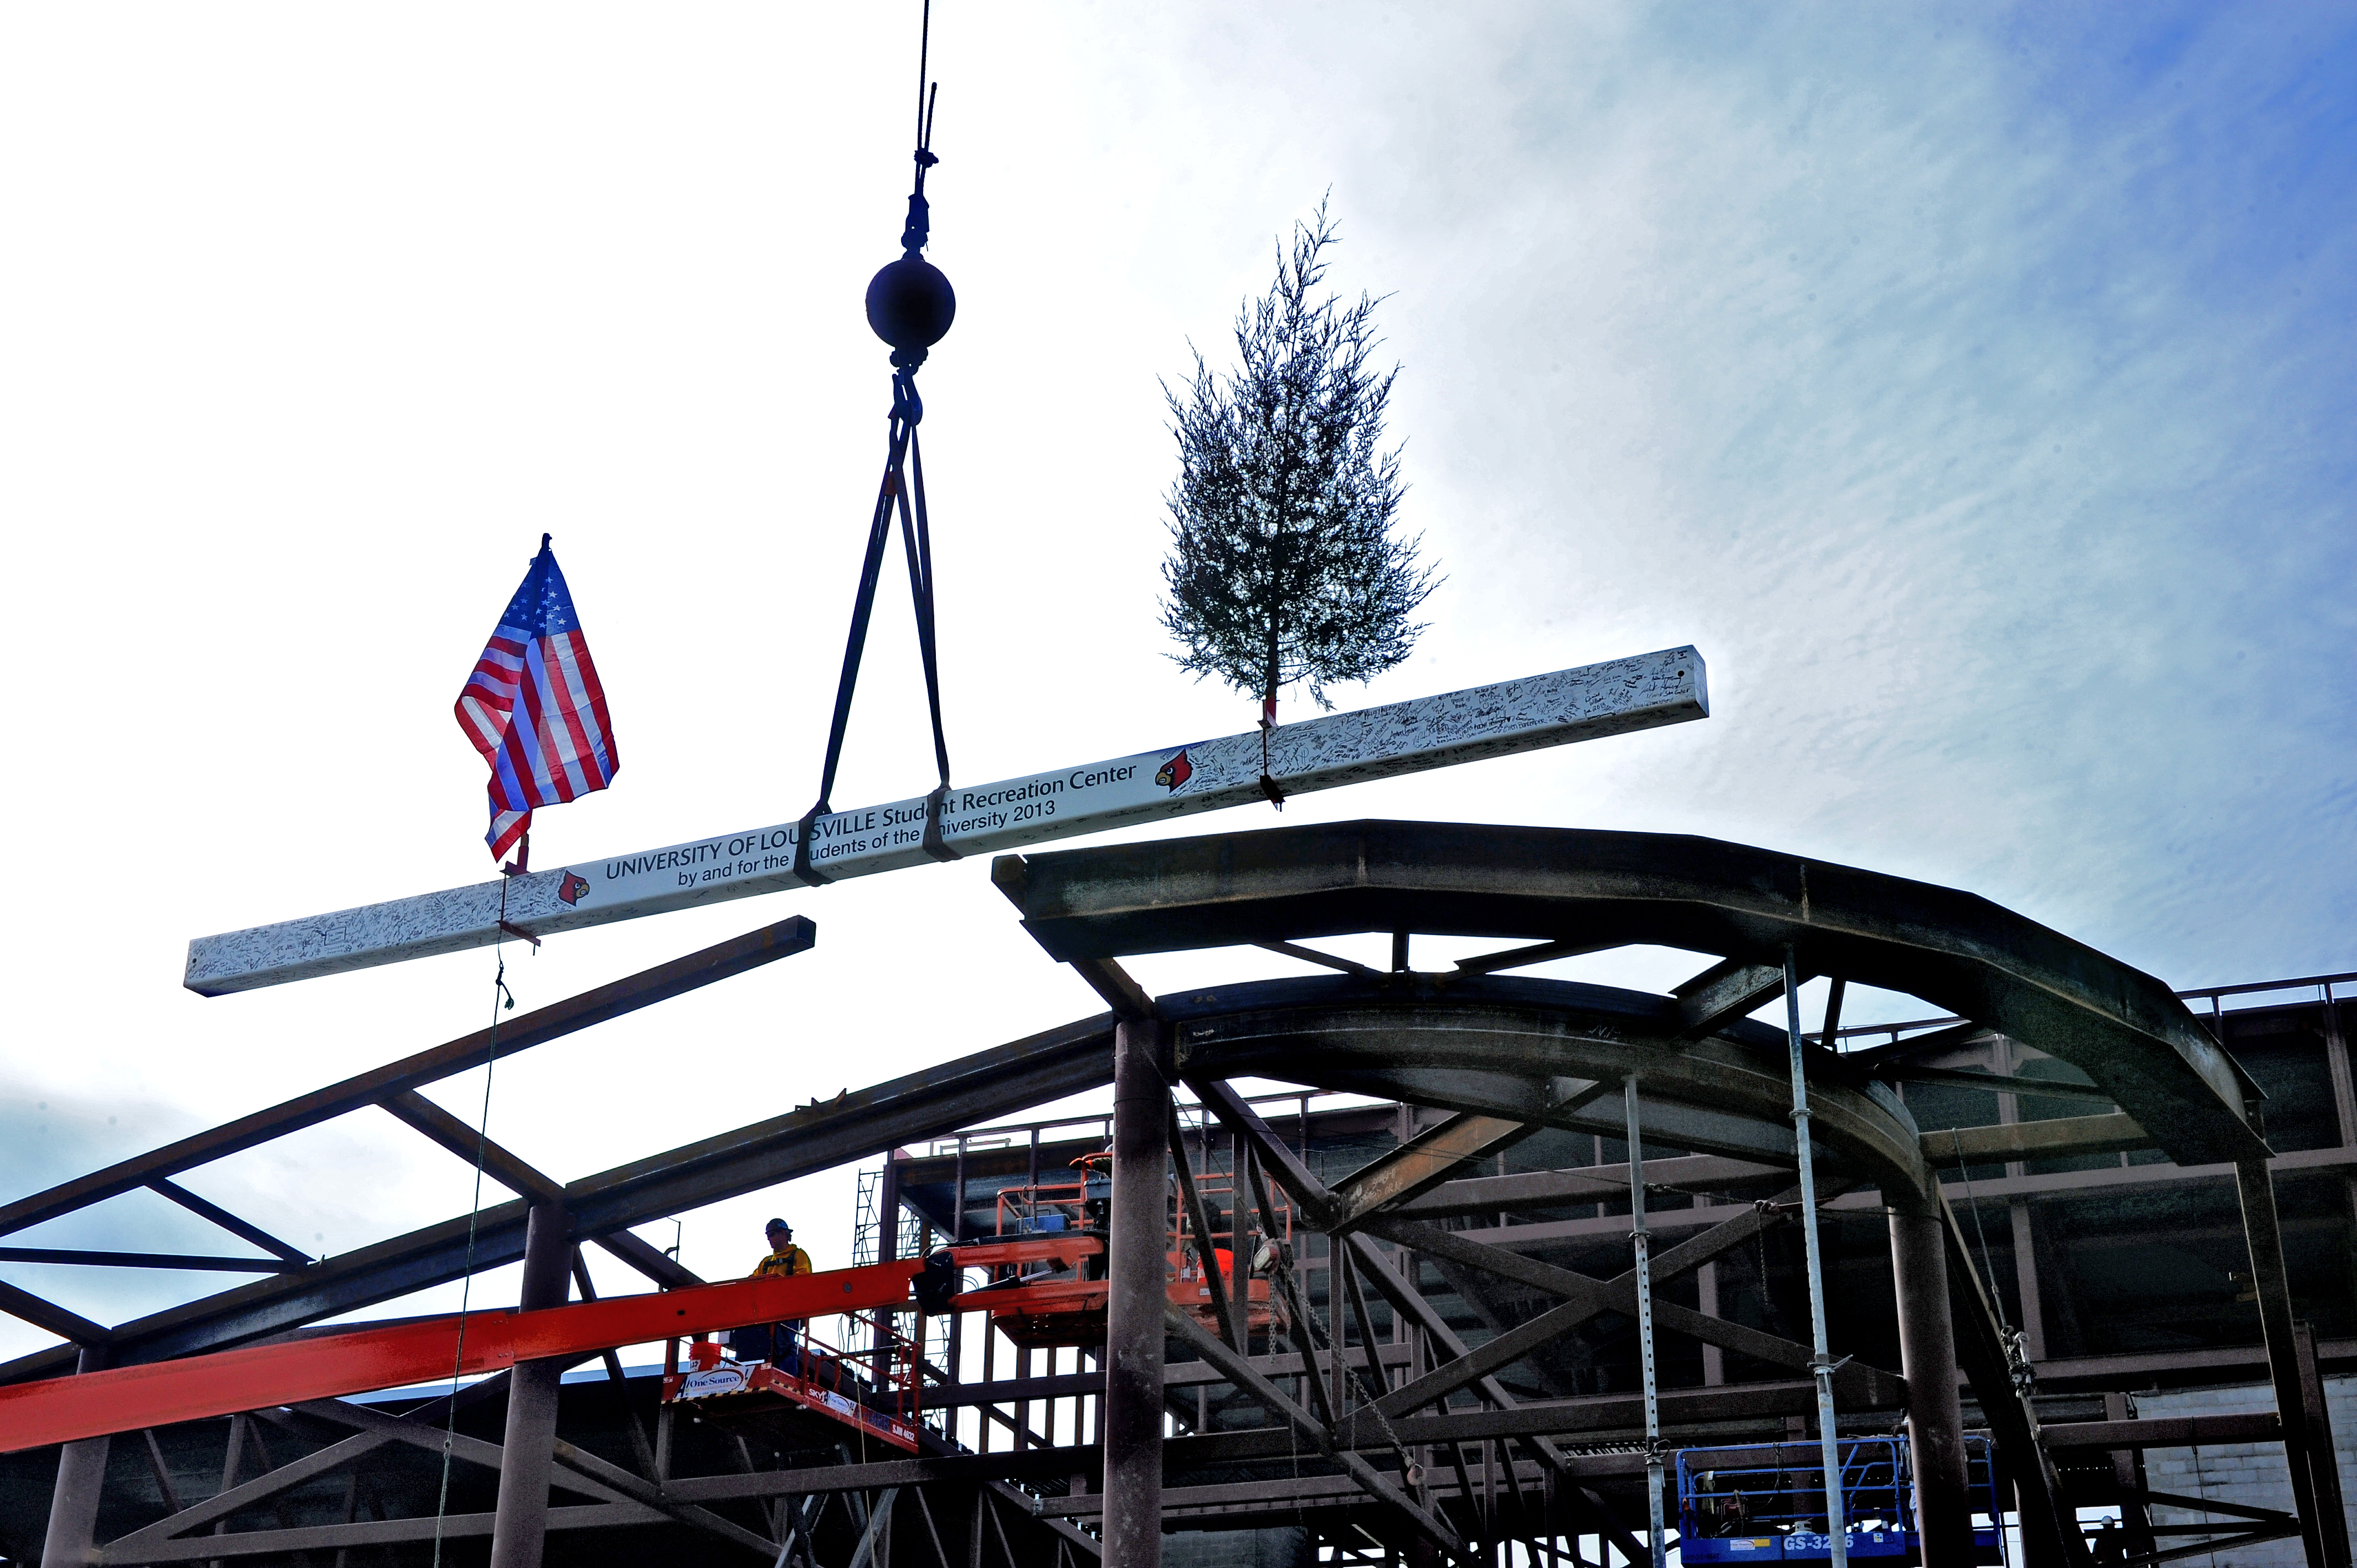 The final top steel beam goes into place Tuesday on the University of Louisville Belknap Campus for a $37.5 million student rec center expected to open in the fall.